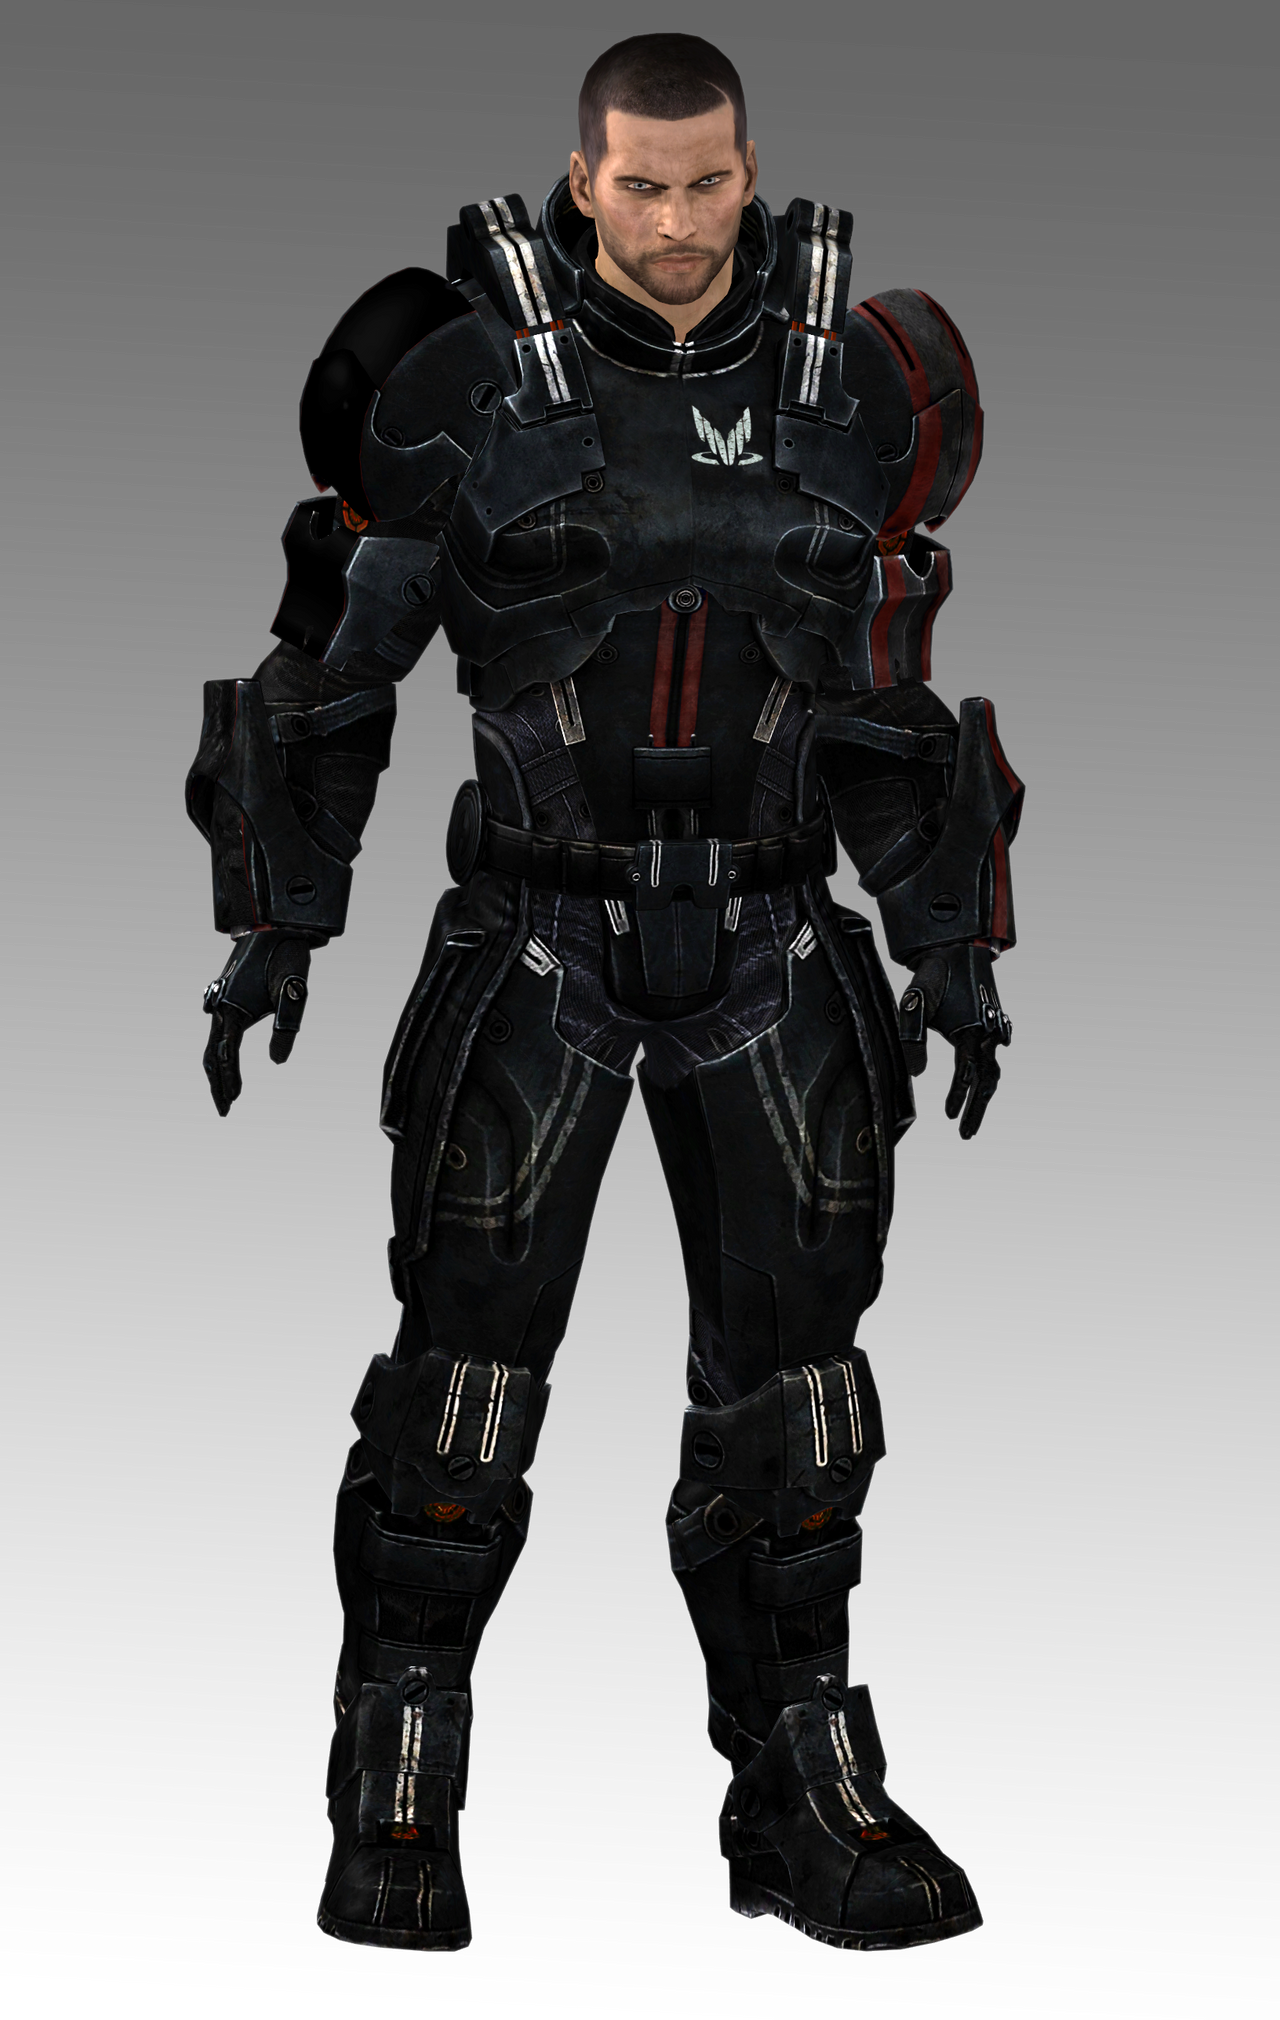 Spectre Defender Armor (available for download!) by Nightfable